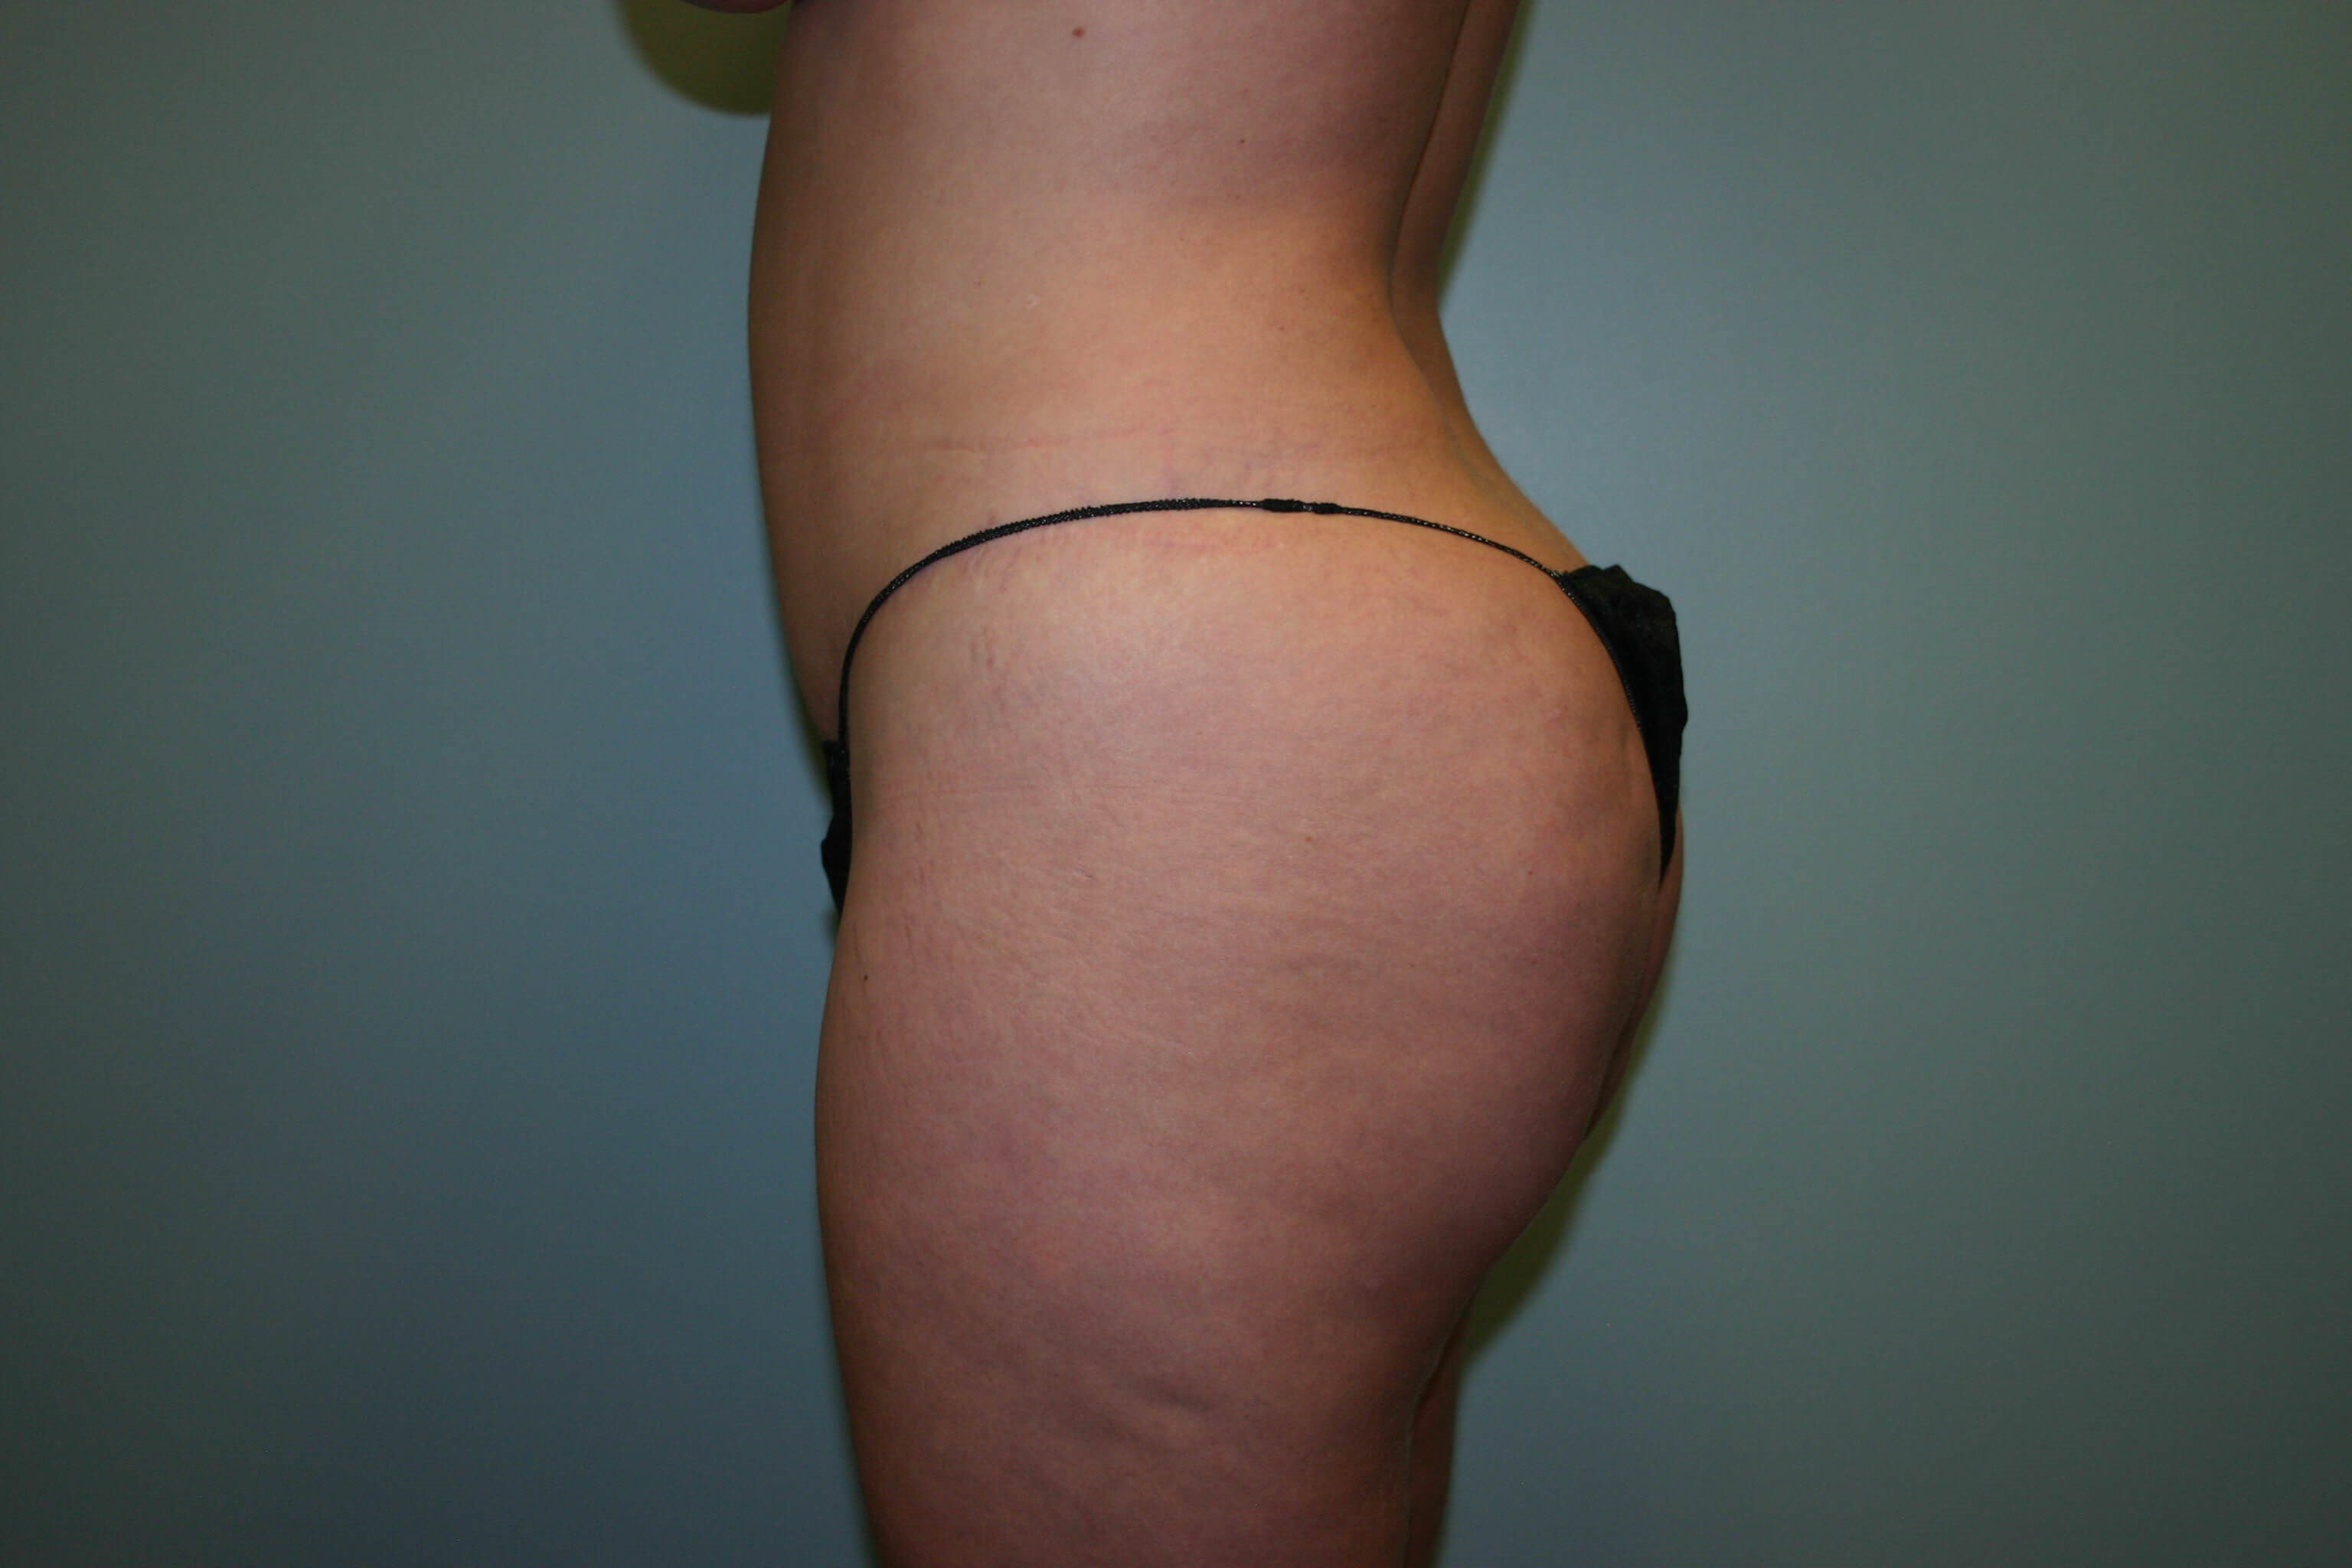 3 Months Post-op Butt Aug Before